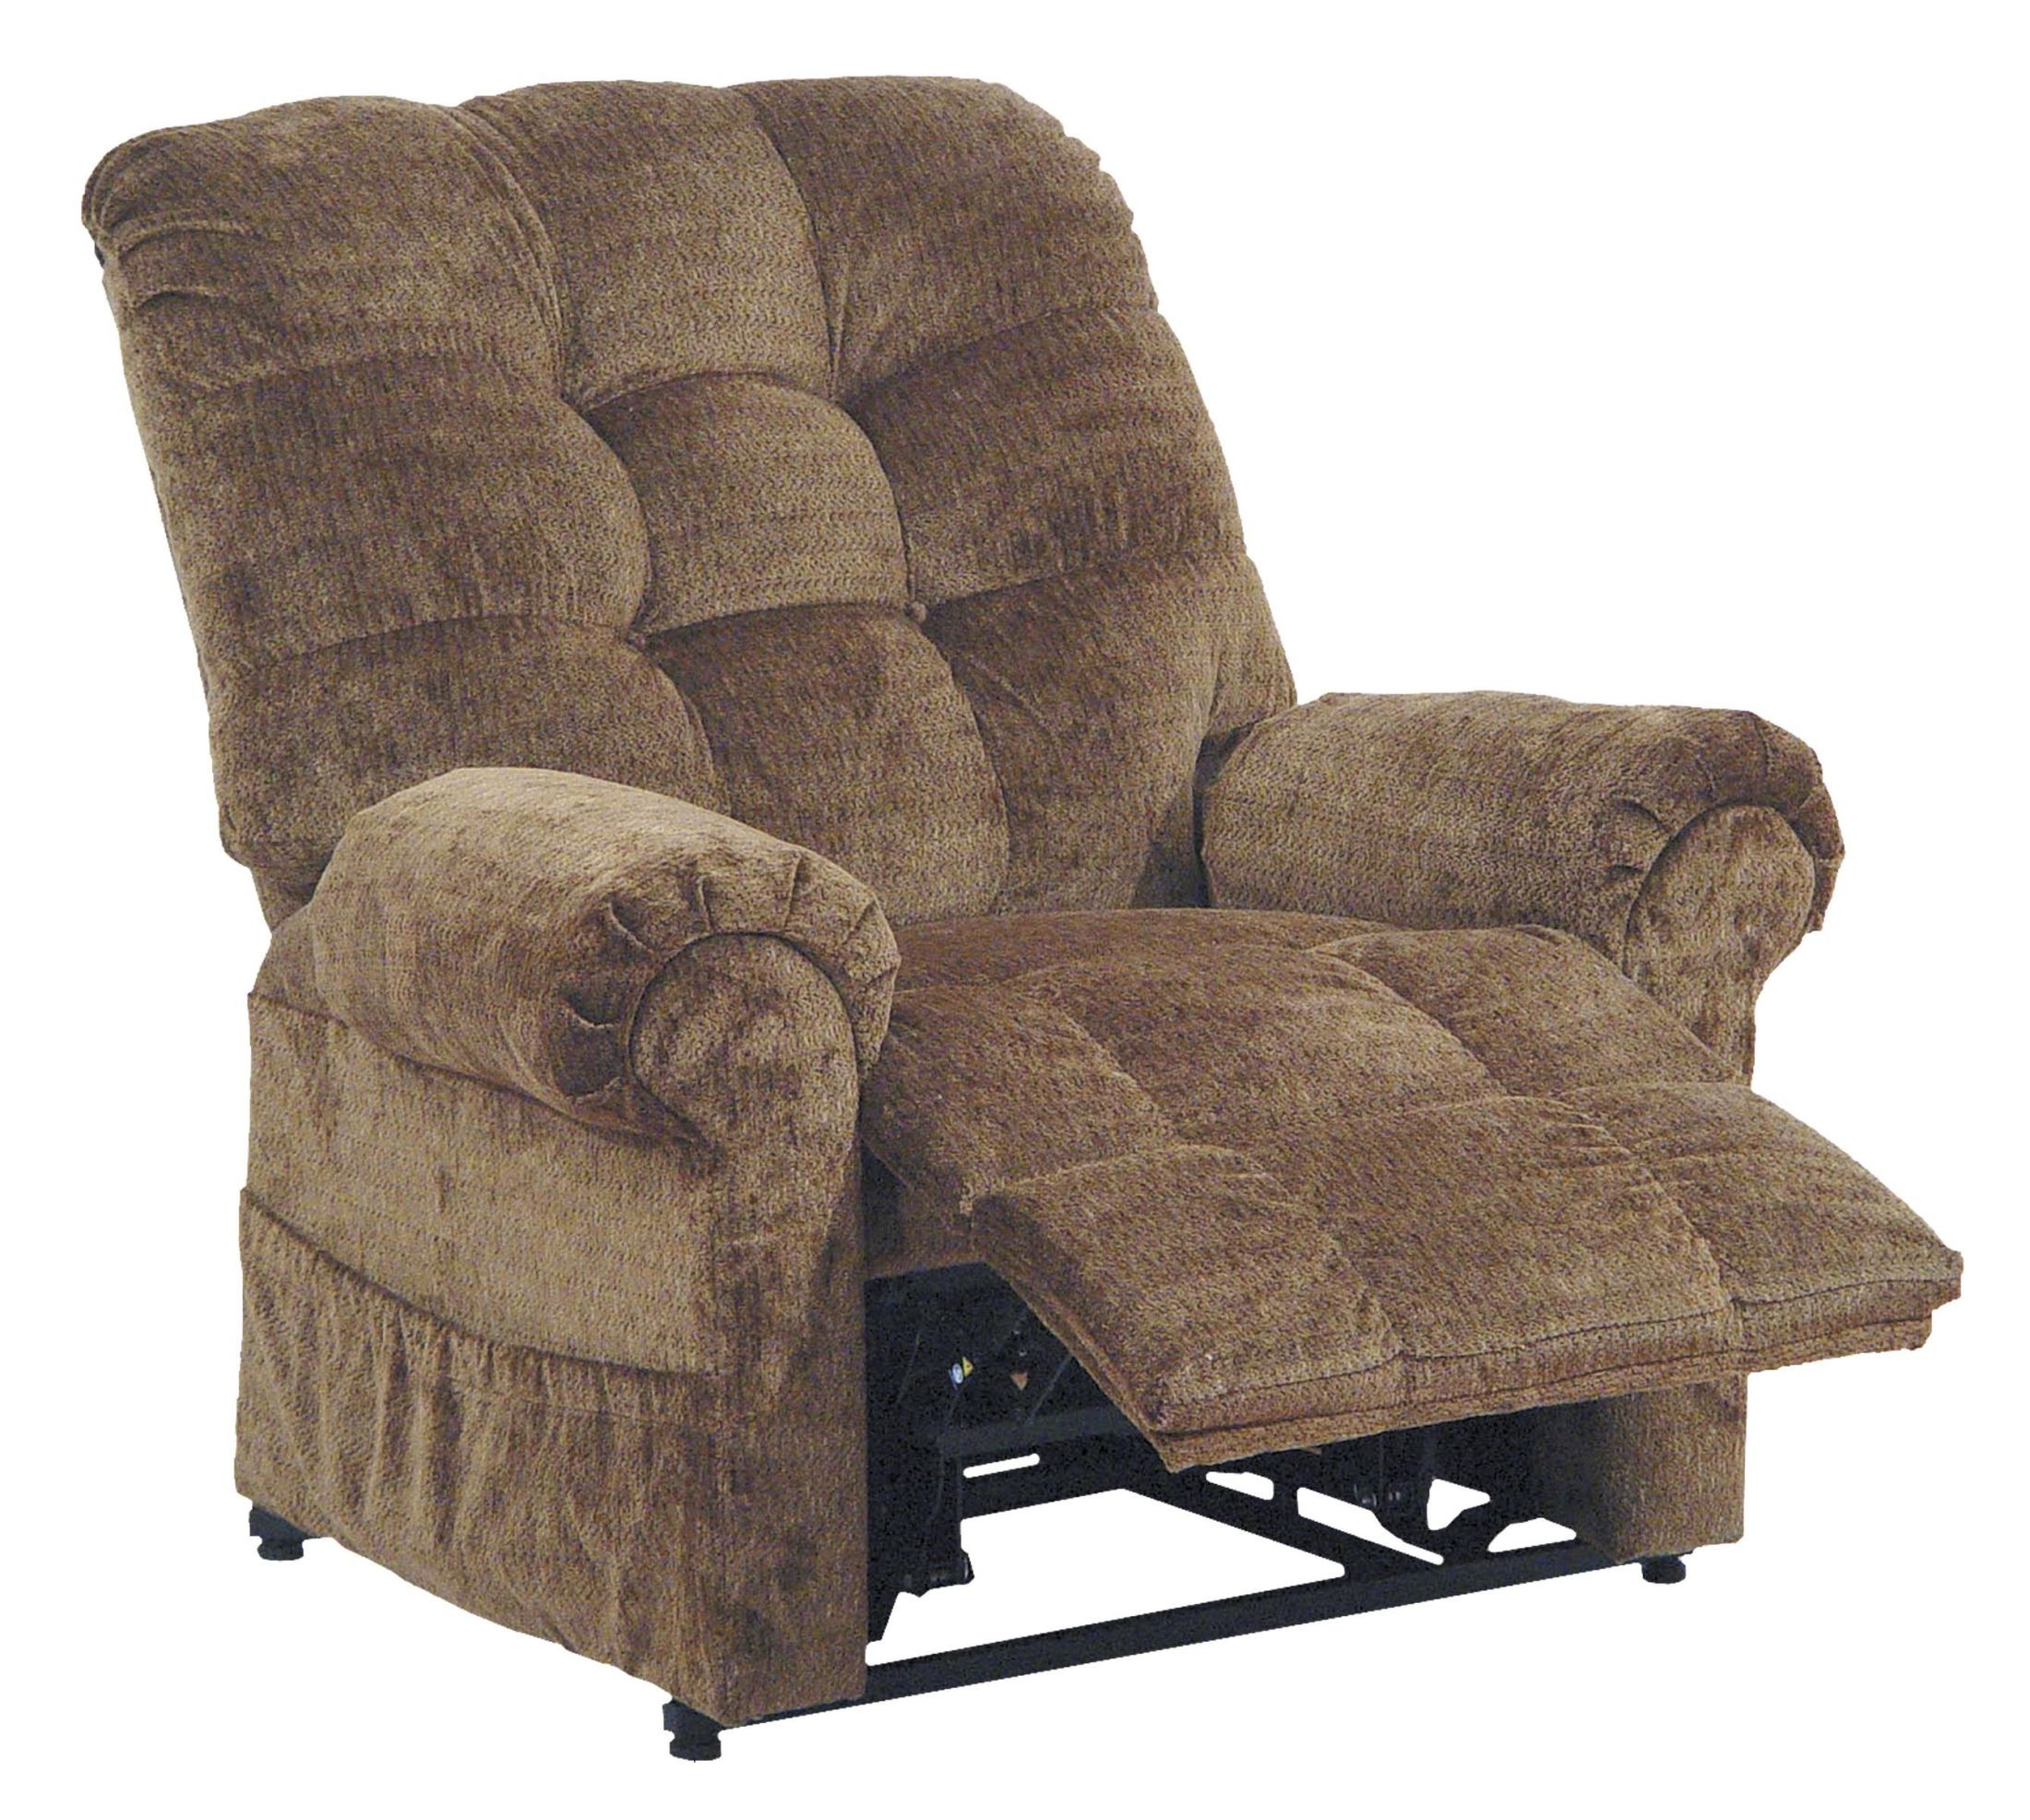 Omni havana power lift recliner from catnapper 4827210236 for Catnapper cloud nine chaise recliner